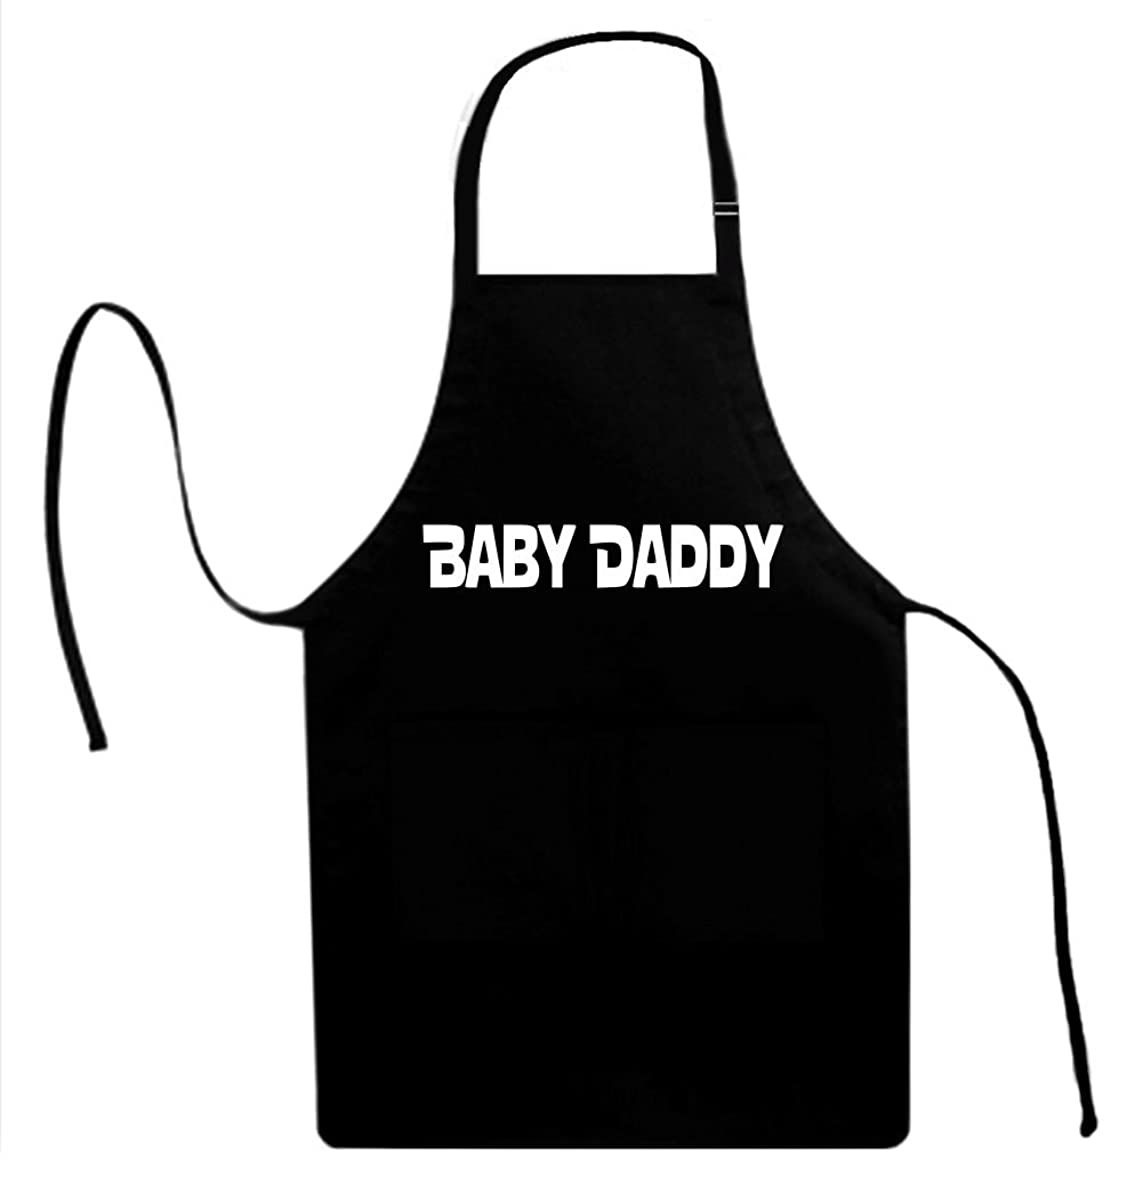 Signature Depot Baby Daddy Funny Unisex Adult Novelty Apron for Men & Women